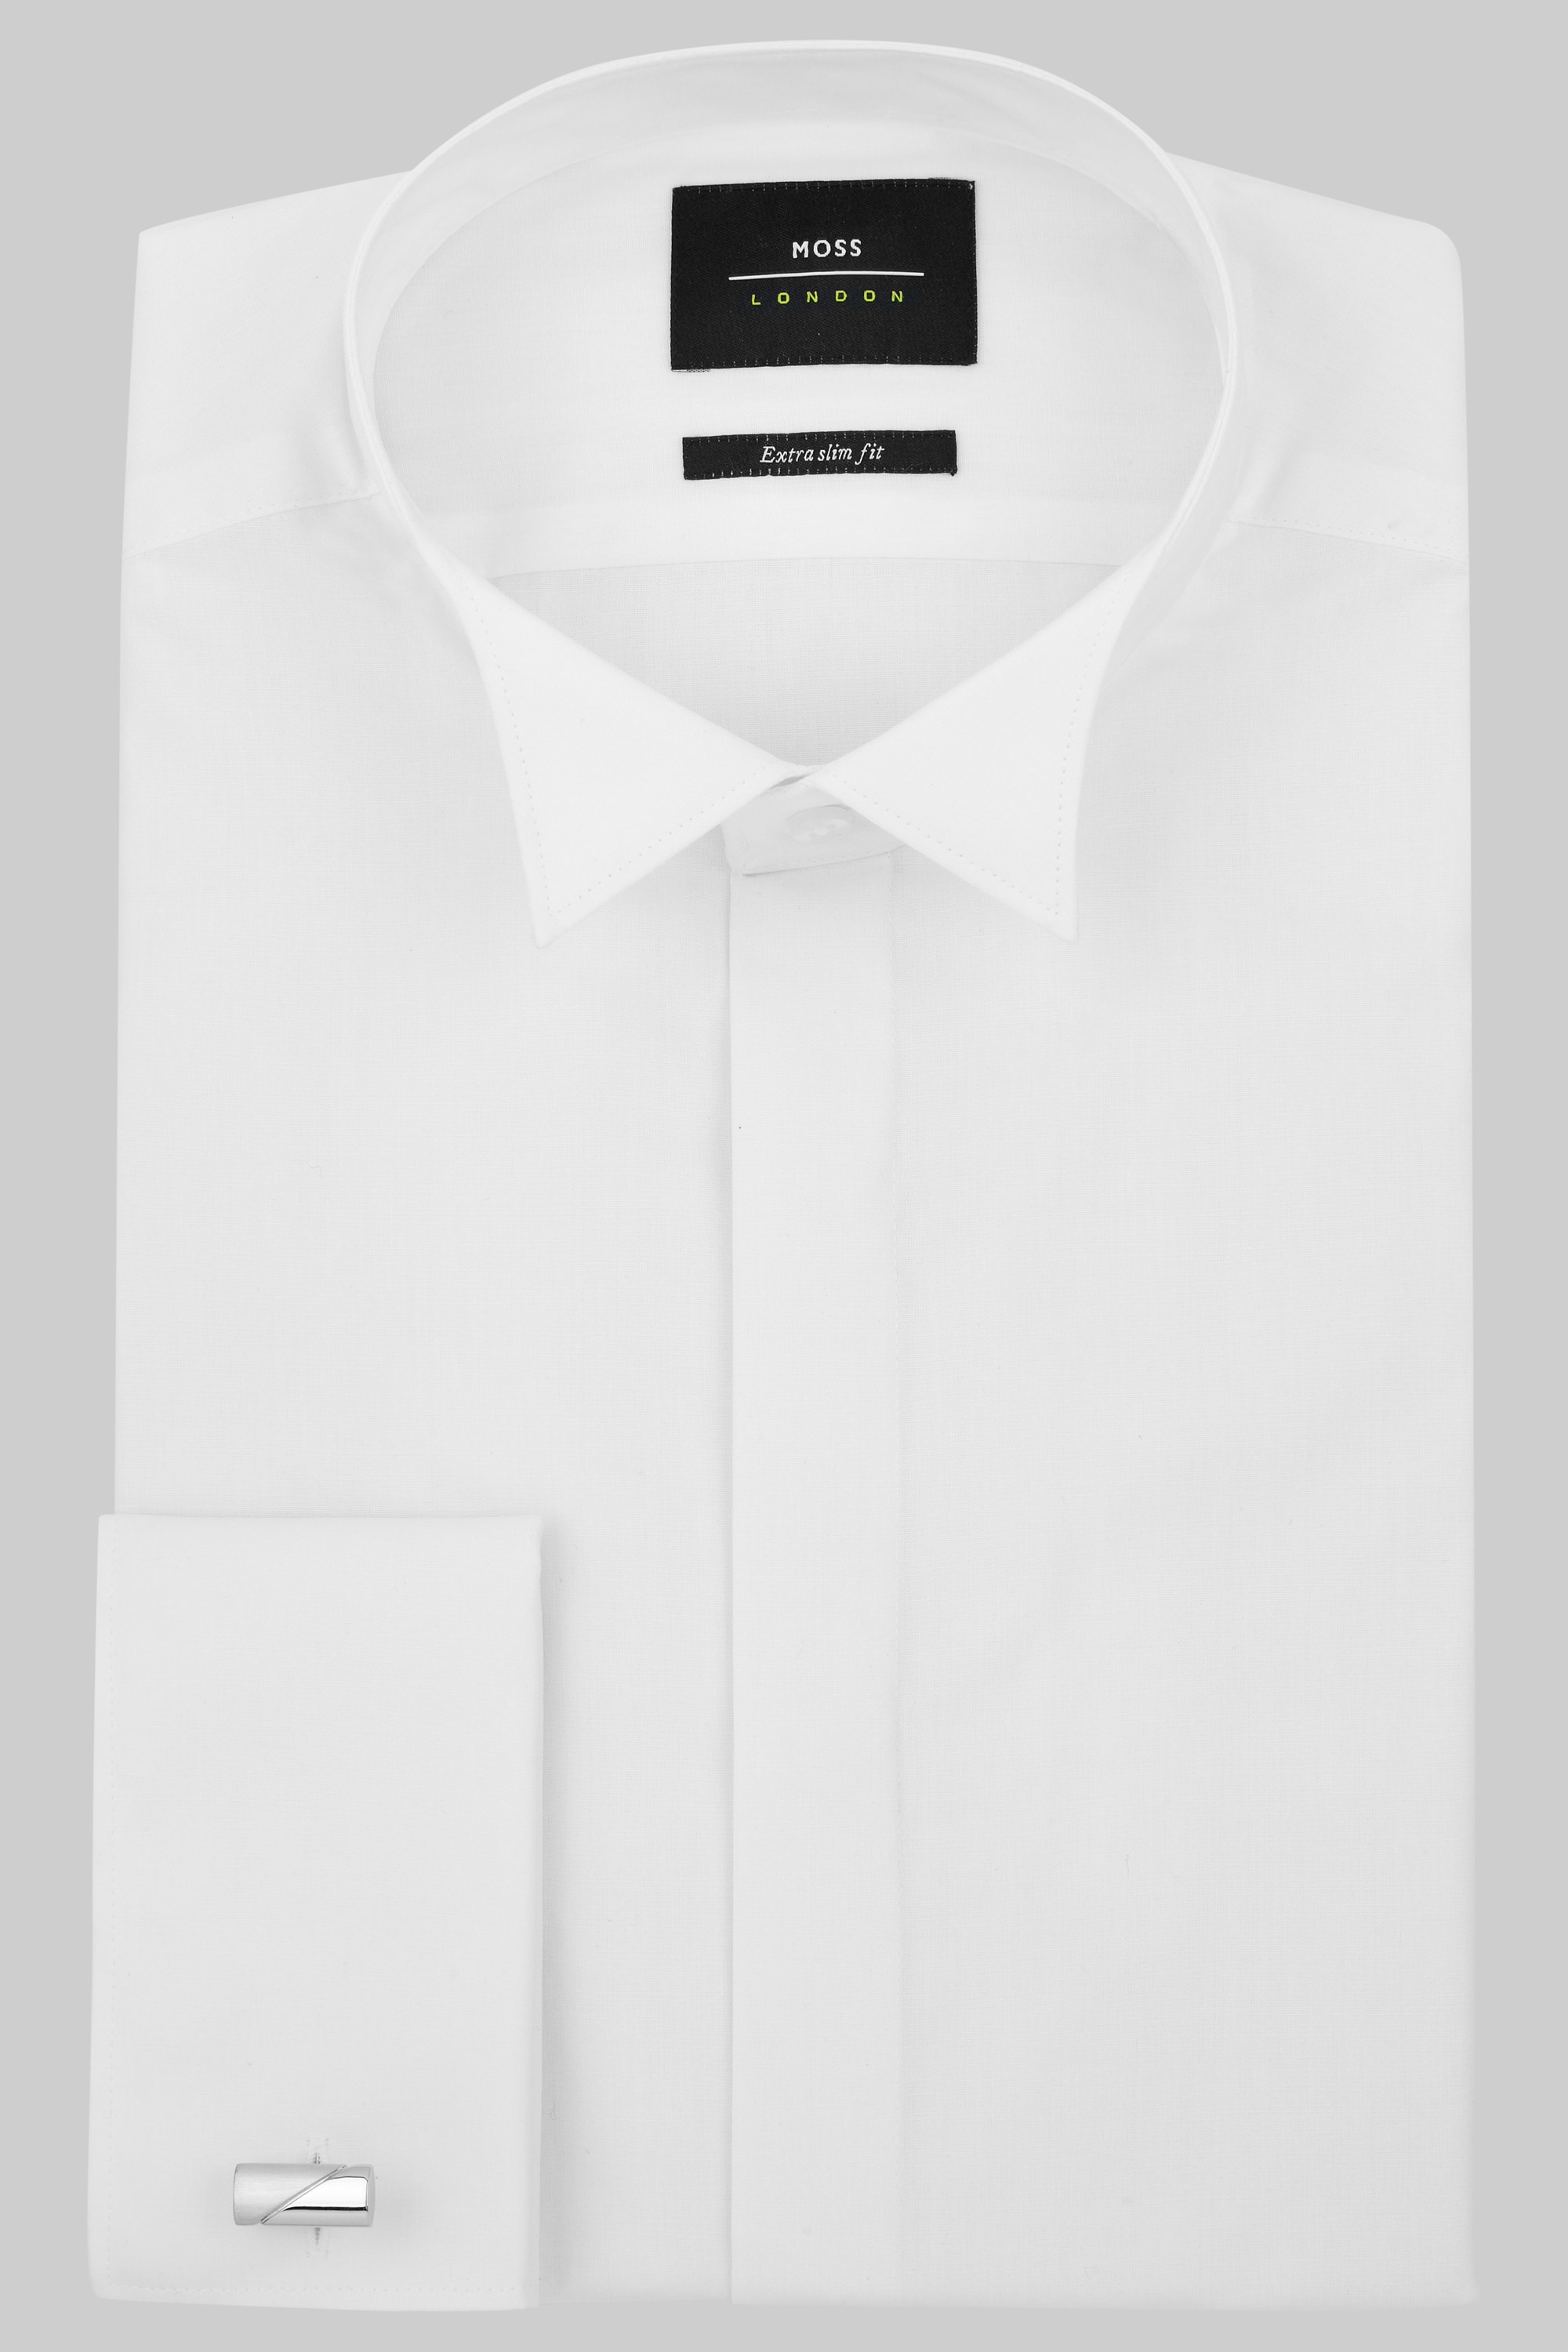 Moss london extra slim fit double cuff wing collar dress shirt for White non iron dress shirts